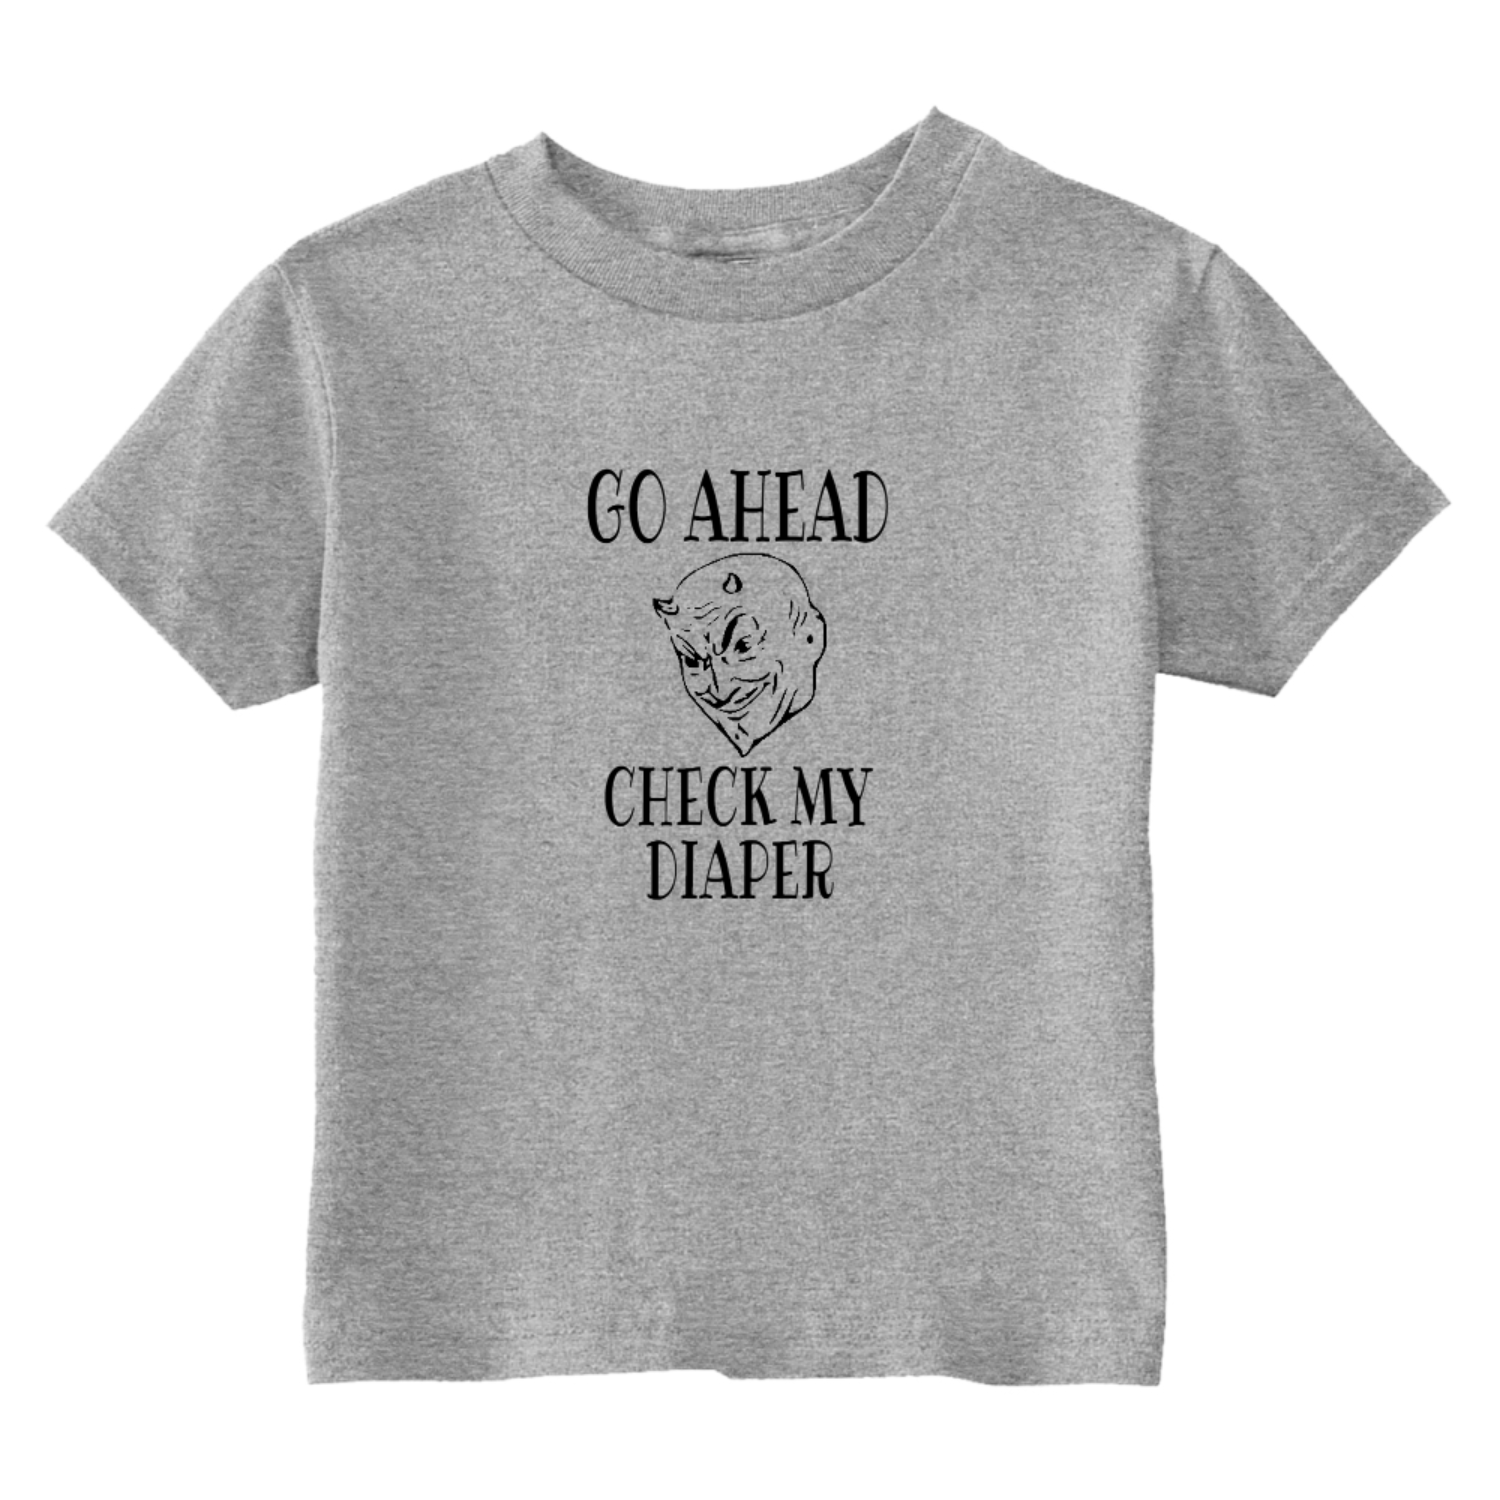 Go Ahead Check My Diaper Toddler T-Shirt Gray